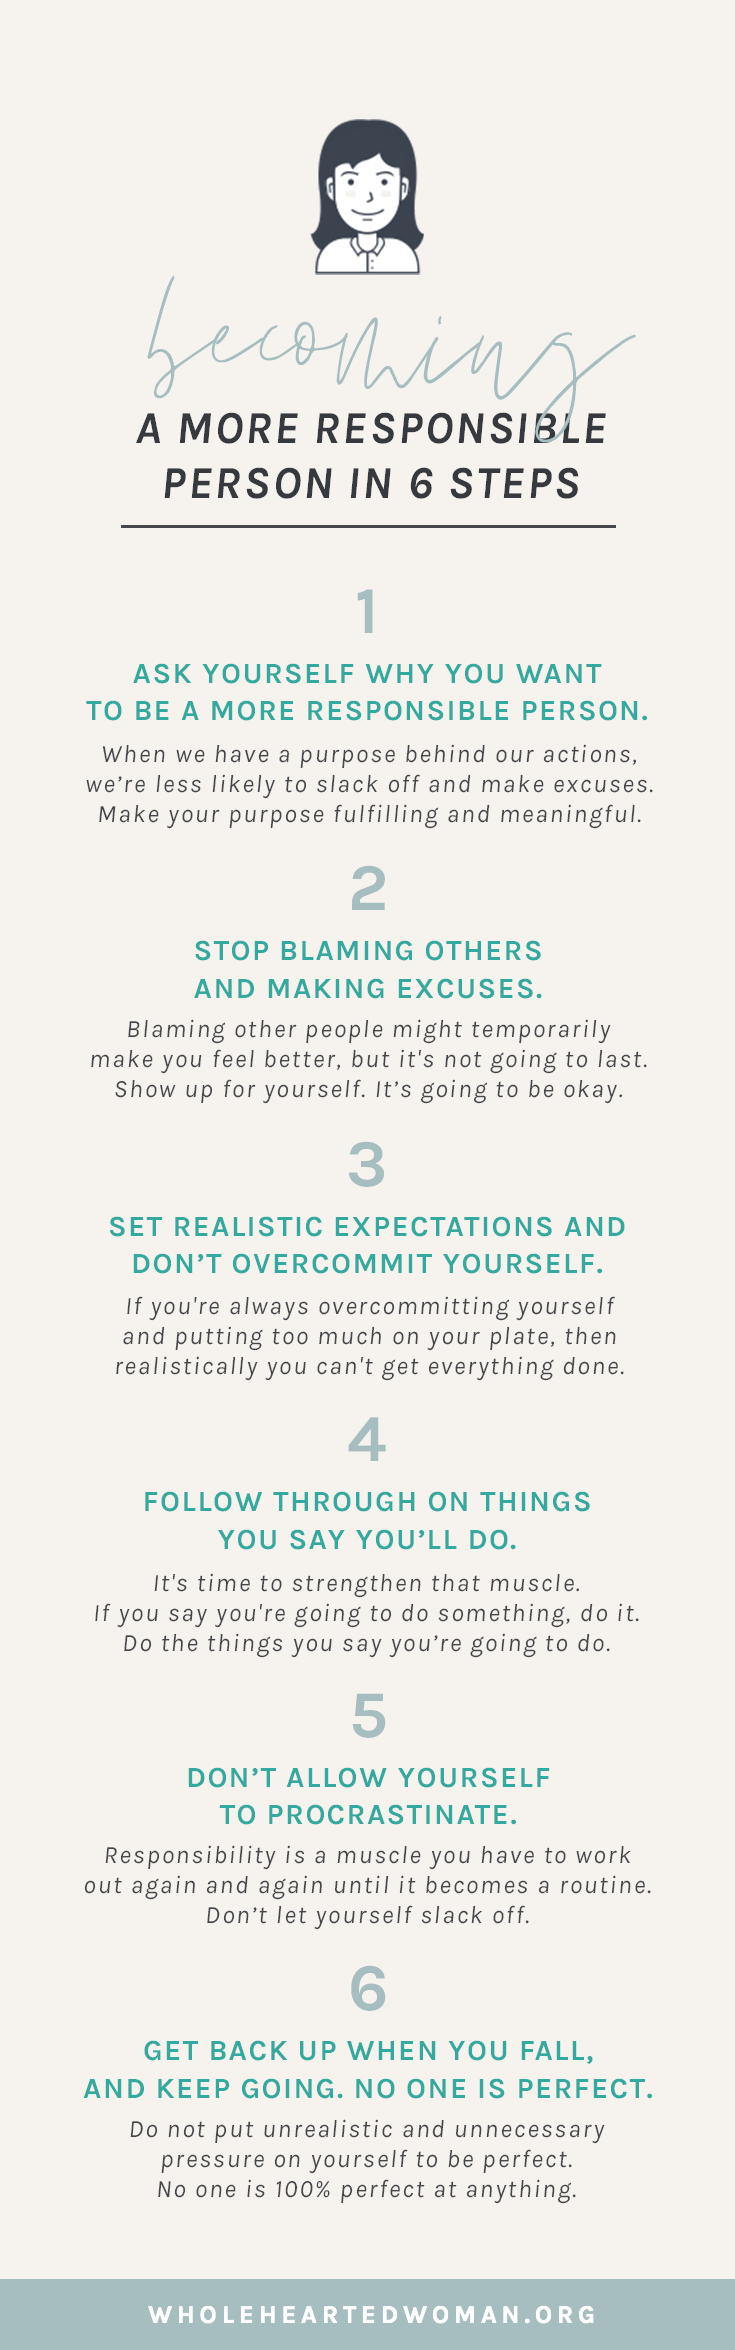 How To Become A More Responsible Person In 6 Steps | How To Adult In Your Twenties | How to Take Responsibility for Your Life | How To Change Your Actions | Changing Your Mindset | Personal Growth & Development | Mindfulness Advice For Millennials | Self-Discovery | Self-Acceptance |Wholehearted Woman | #selfawareness | #personalgrowth